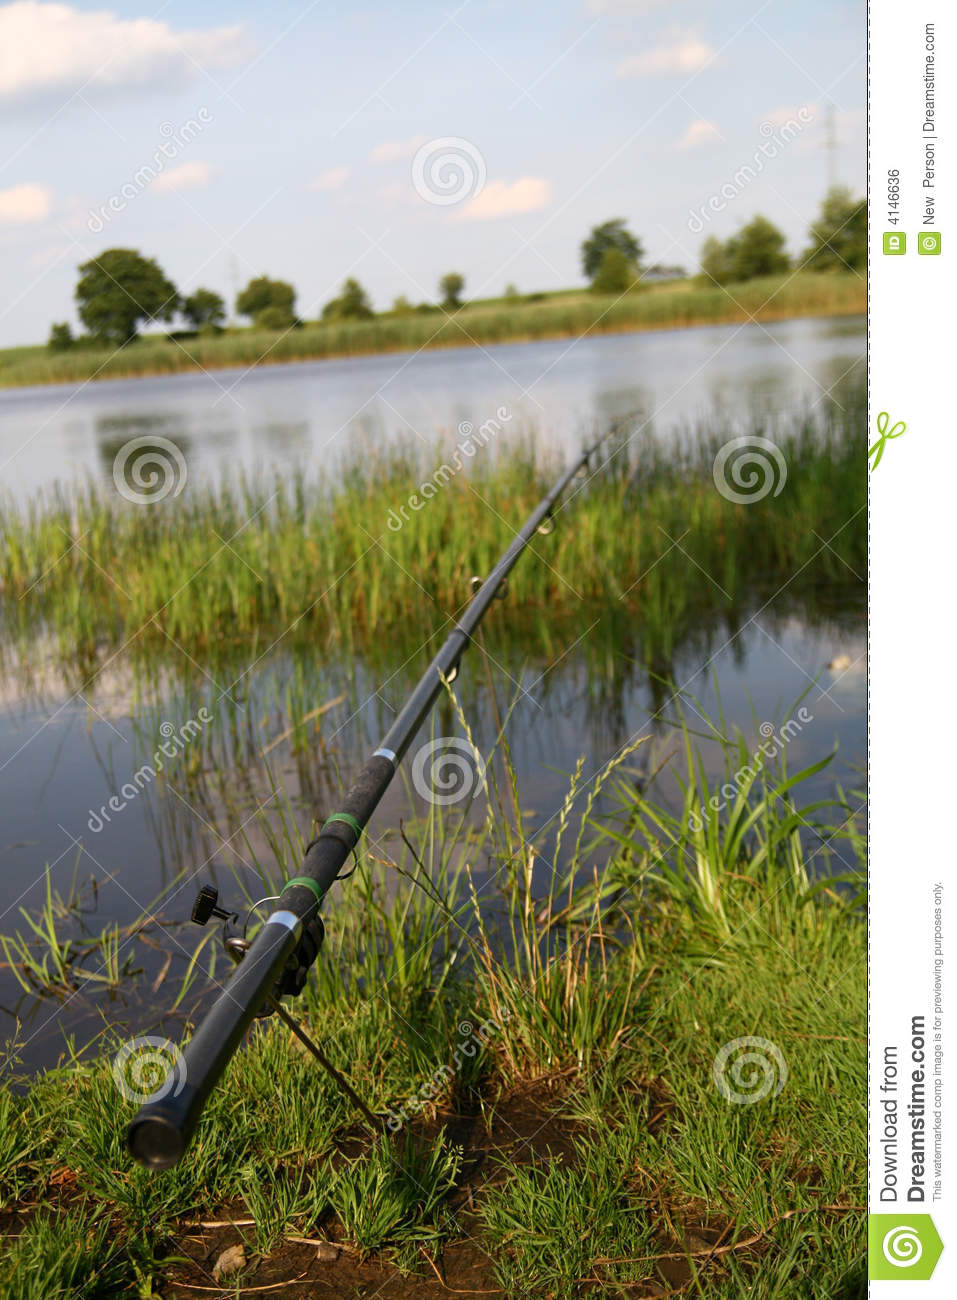 Fishing time royalty free stock image image 4146636 for Fishing times free